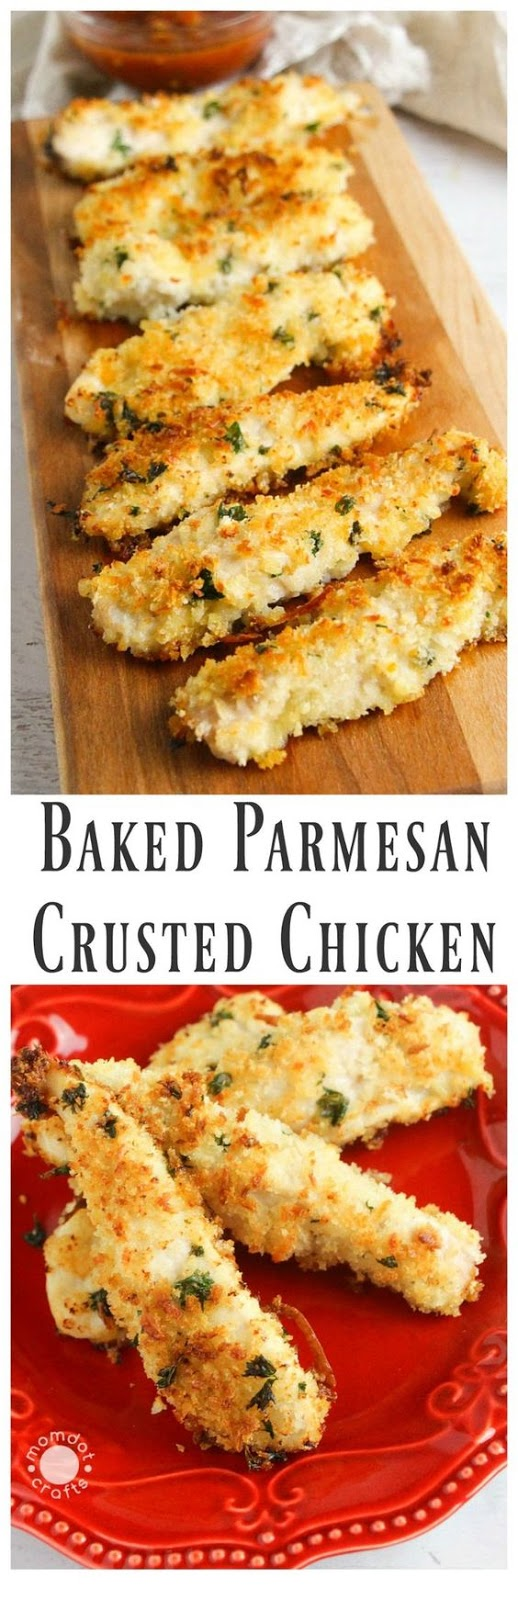 Baked Parmesan Crusted Chicken Cucina De Yung